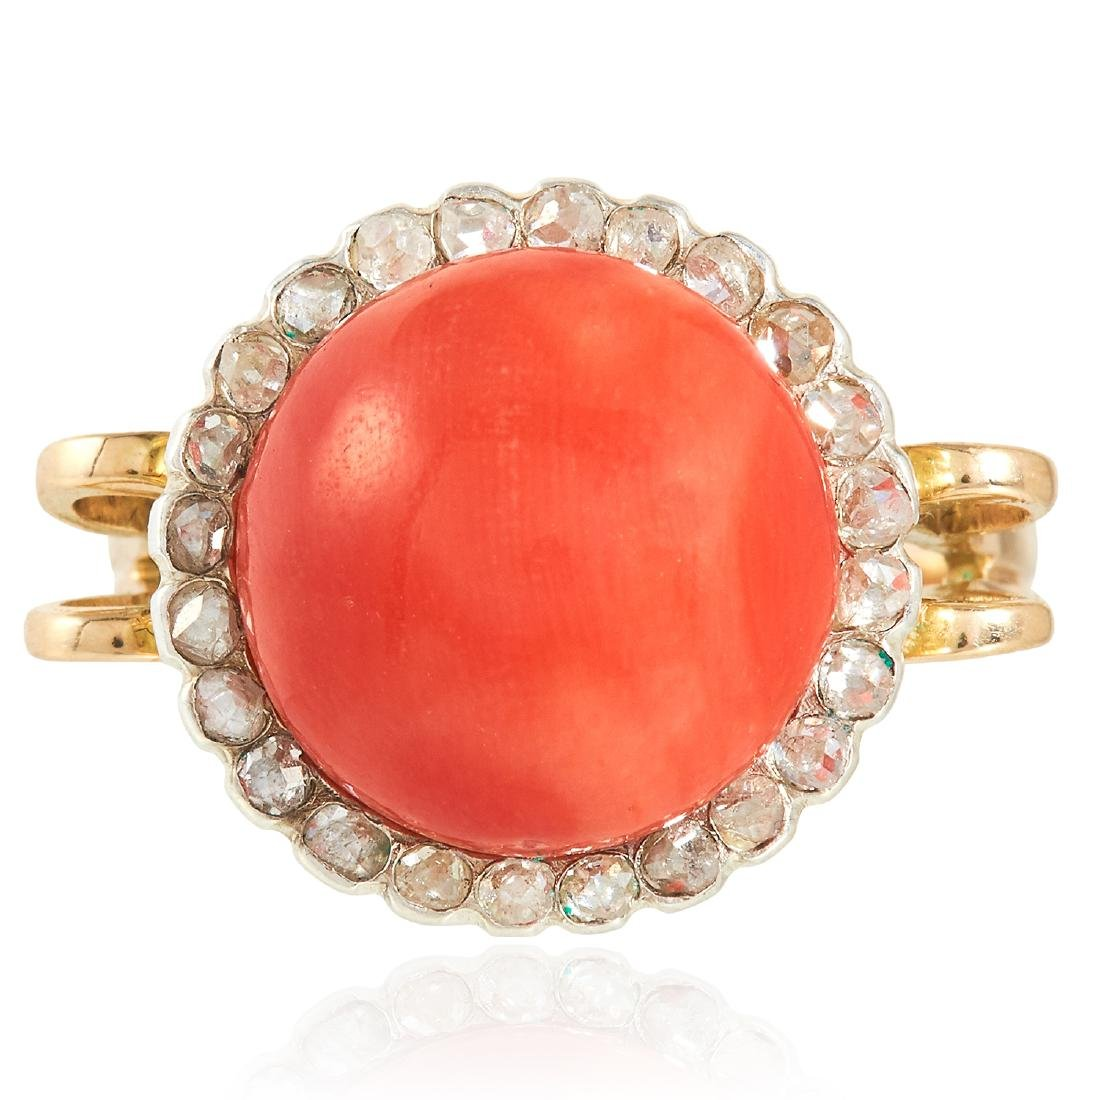 AN ANTIQUE CORAL AND DIAMOND RING in high carat yellow